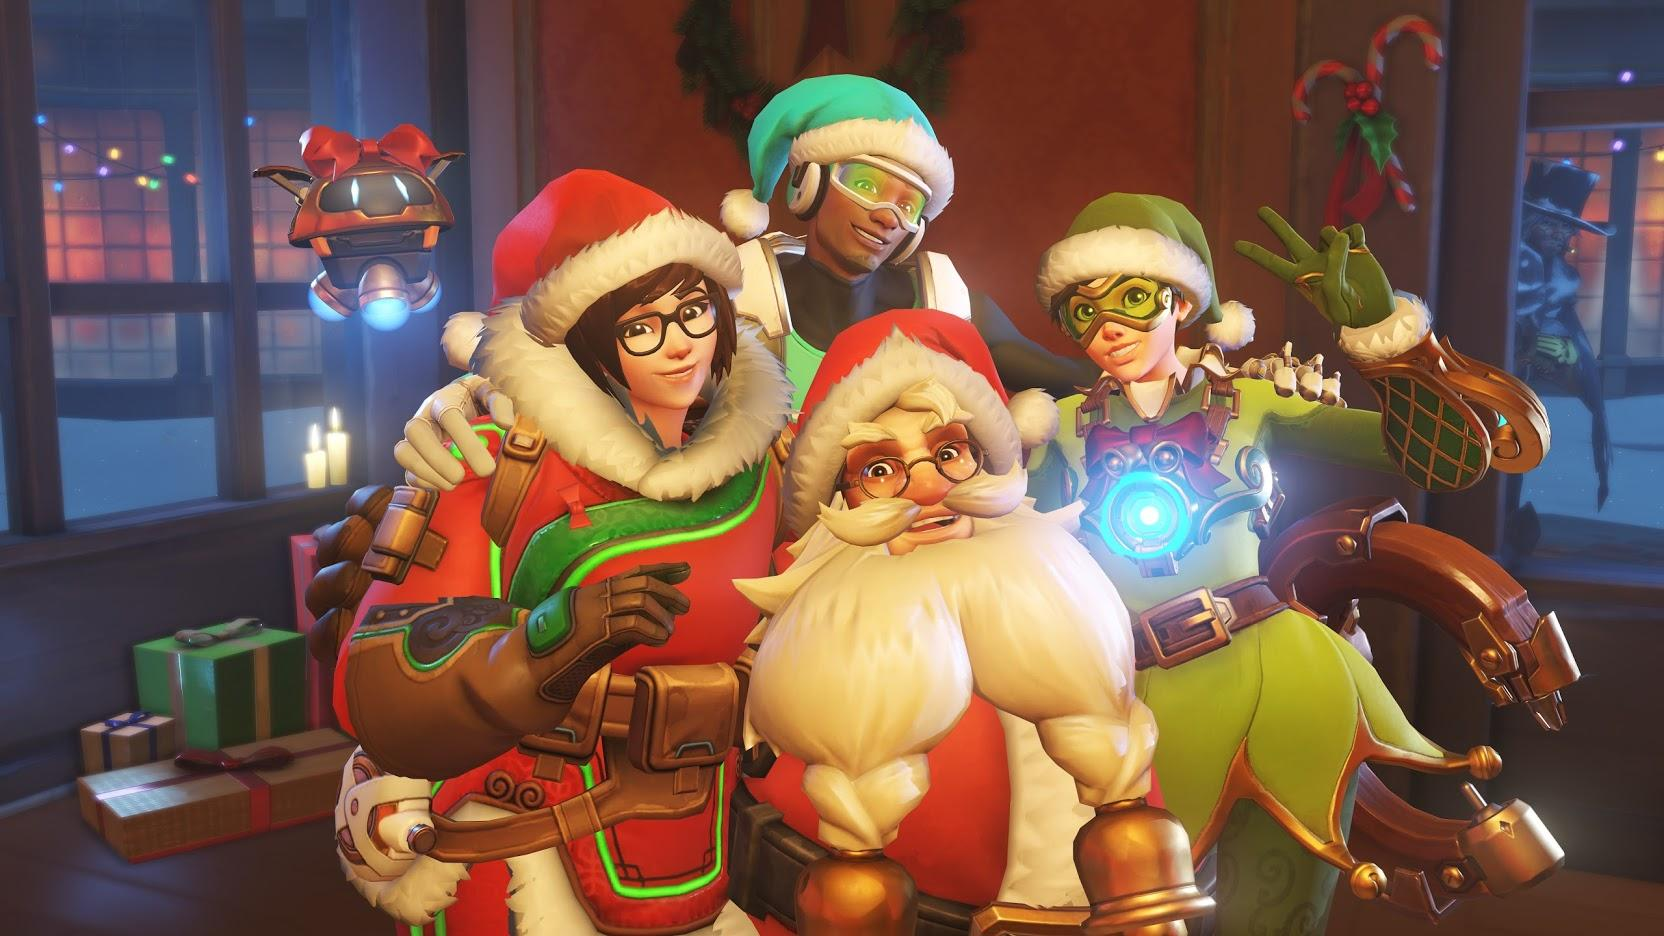 Overwatch's Winter Wonderland event returns next week